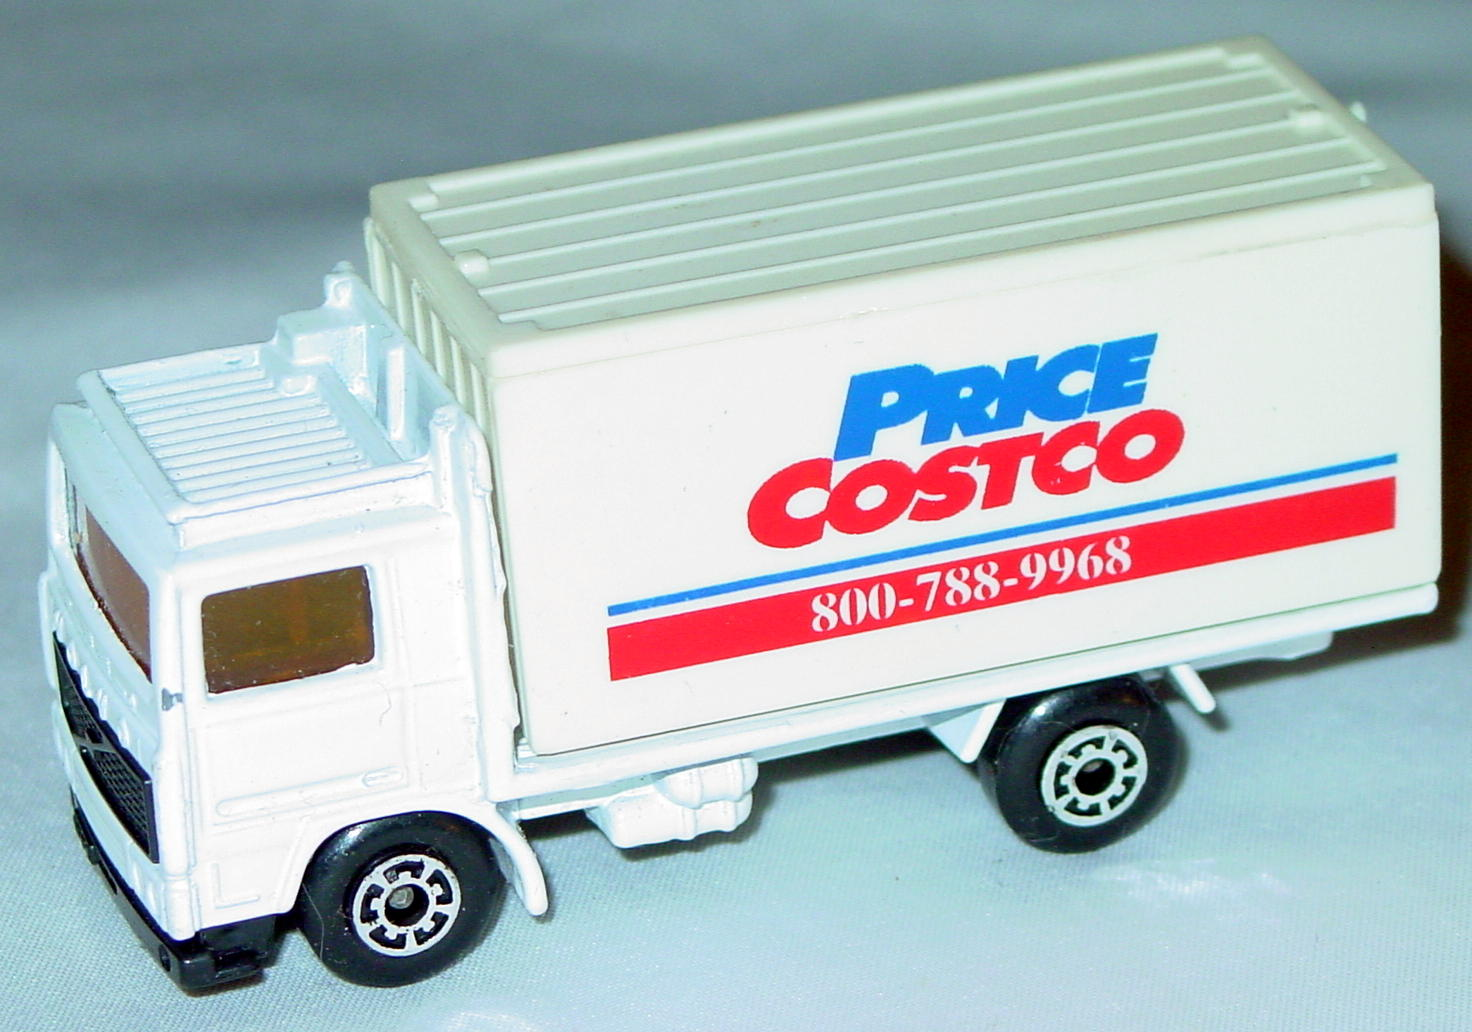 ASAP-CCI 20 D 97 - Volvo Cont Truck White and White Price Costco ASAP